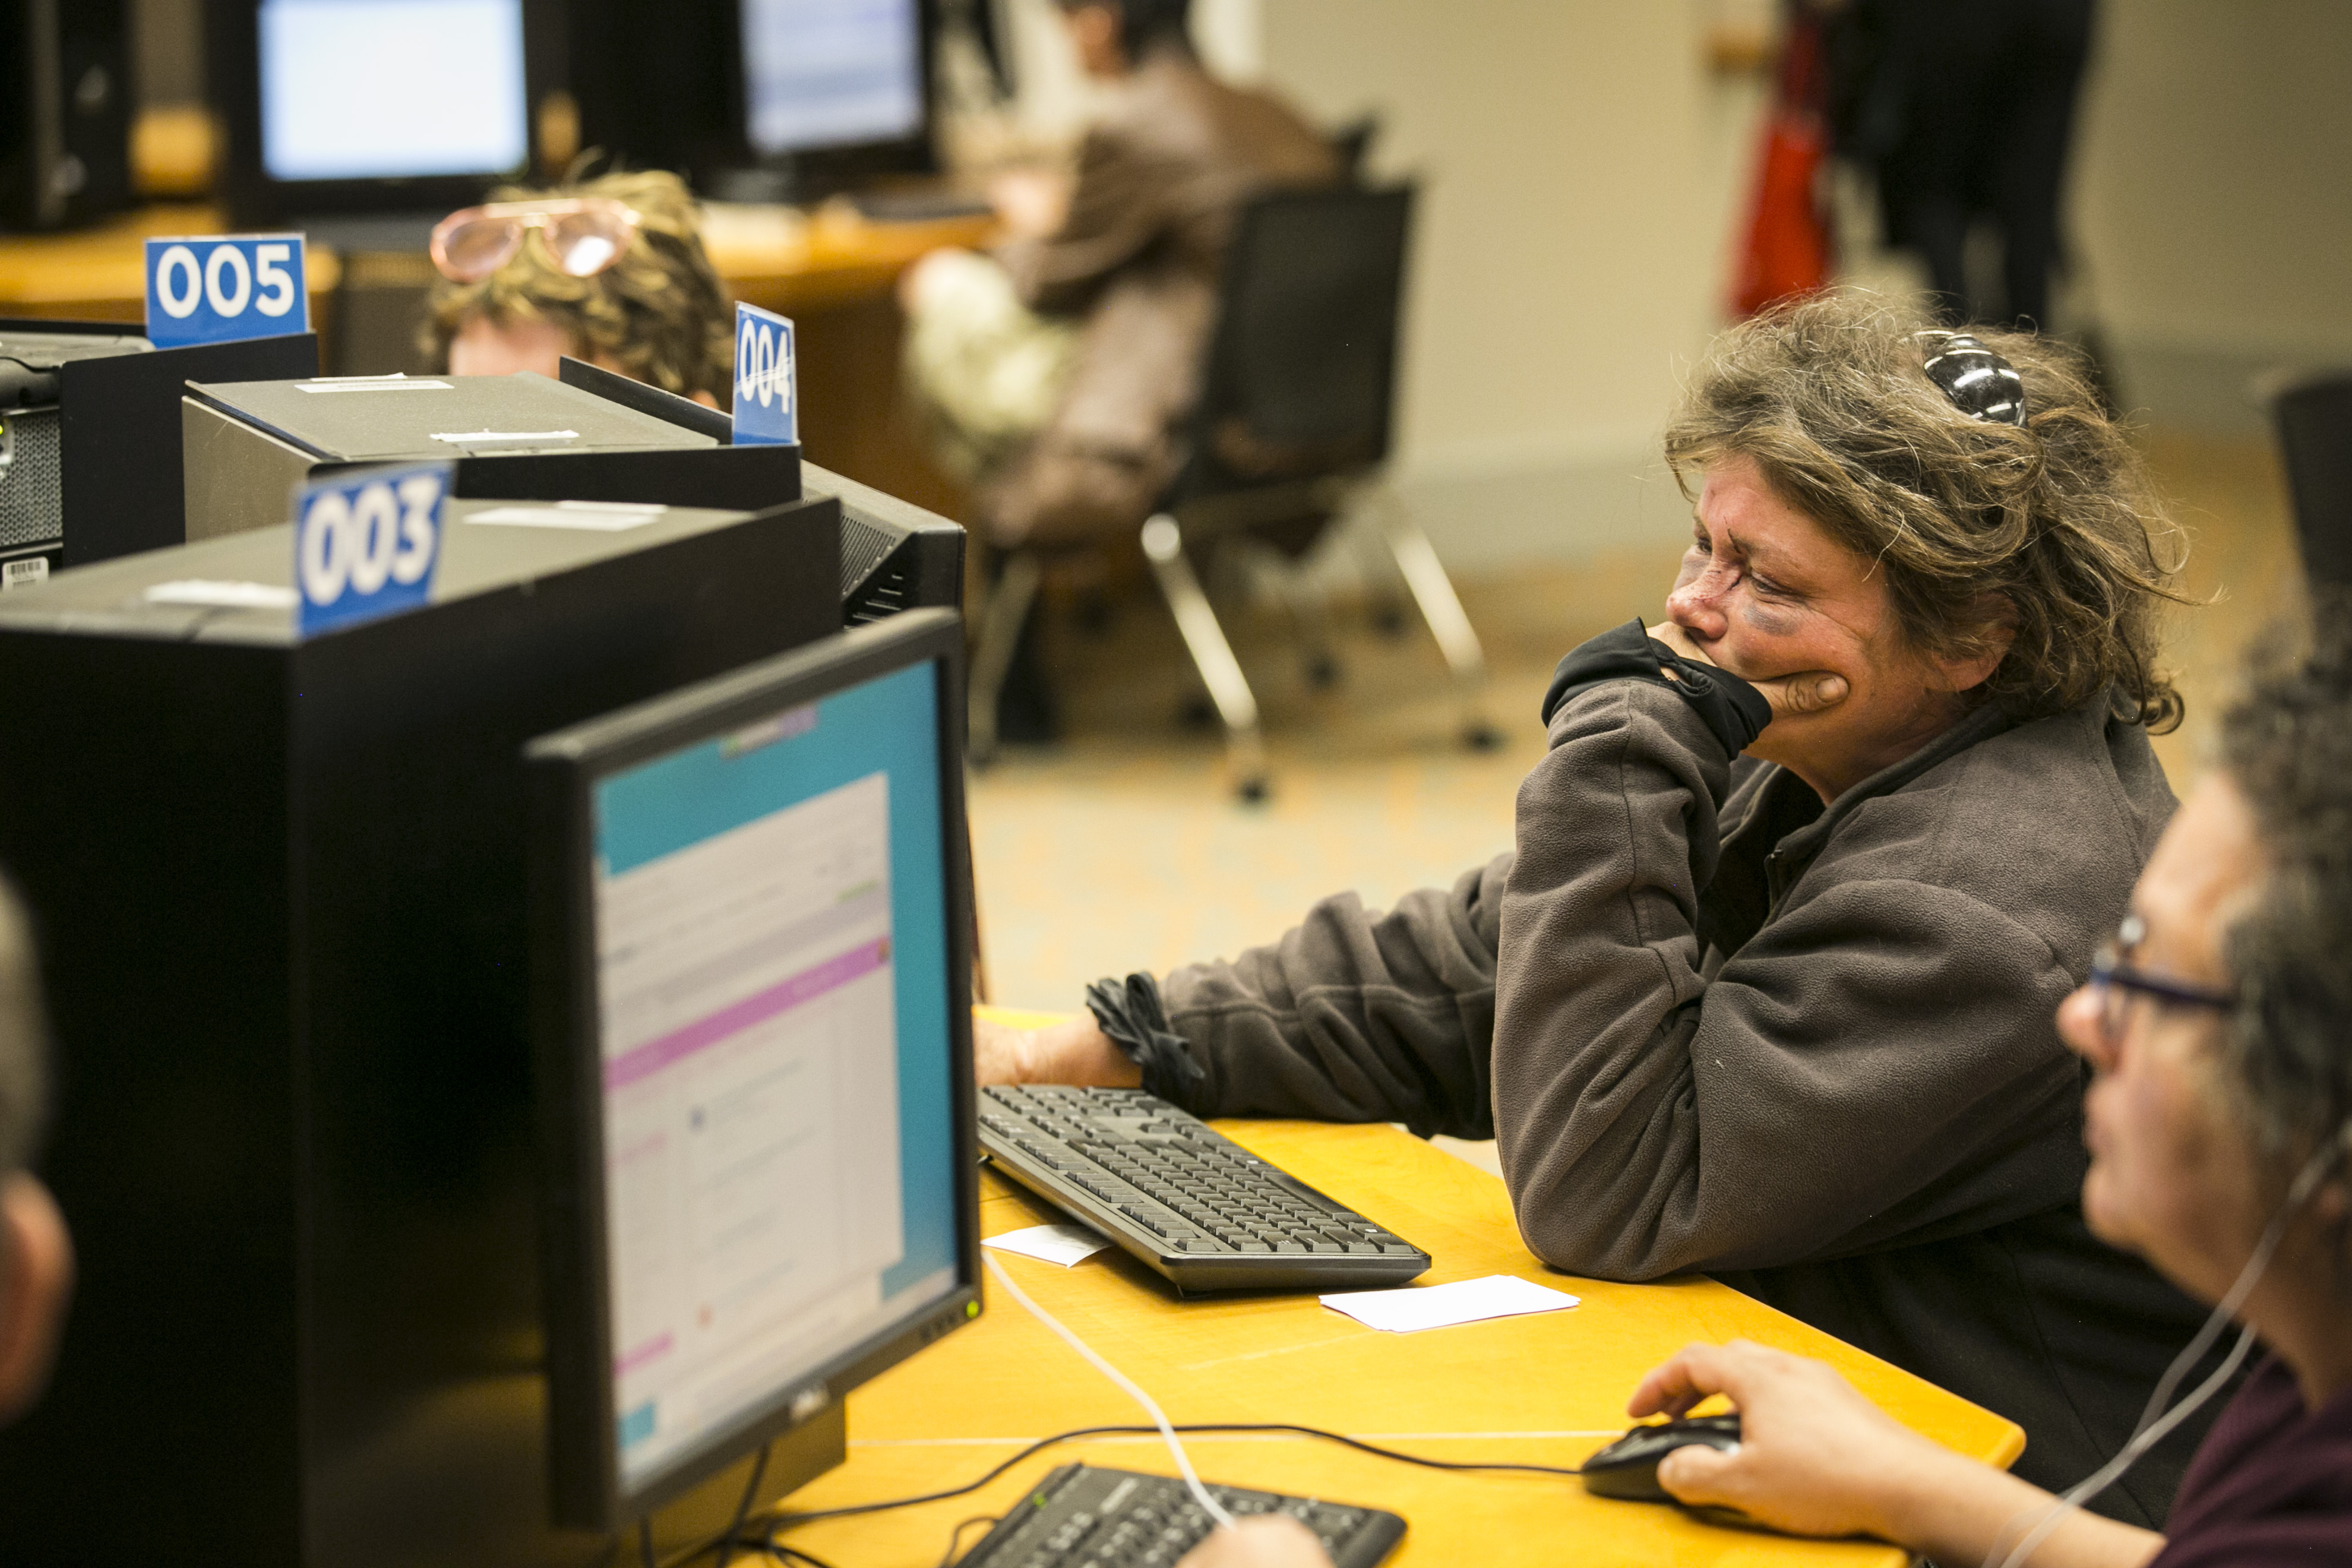 <p>Linda Campbelo of Denver uses a computerat the Denver Central Library to play a game on Thursday, June 25, 2017. Others nearby were watching movies, reading emails and browsing the web.</p>